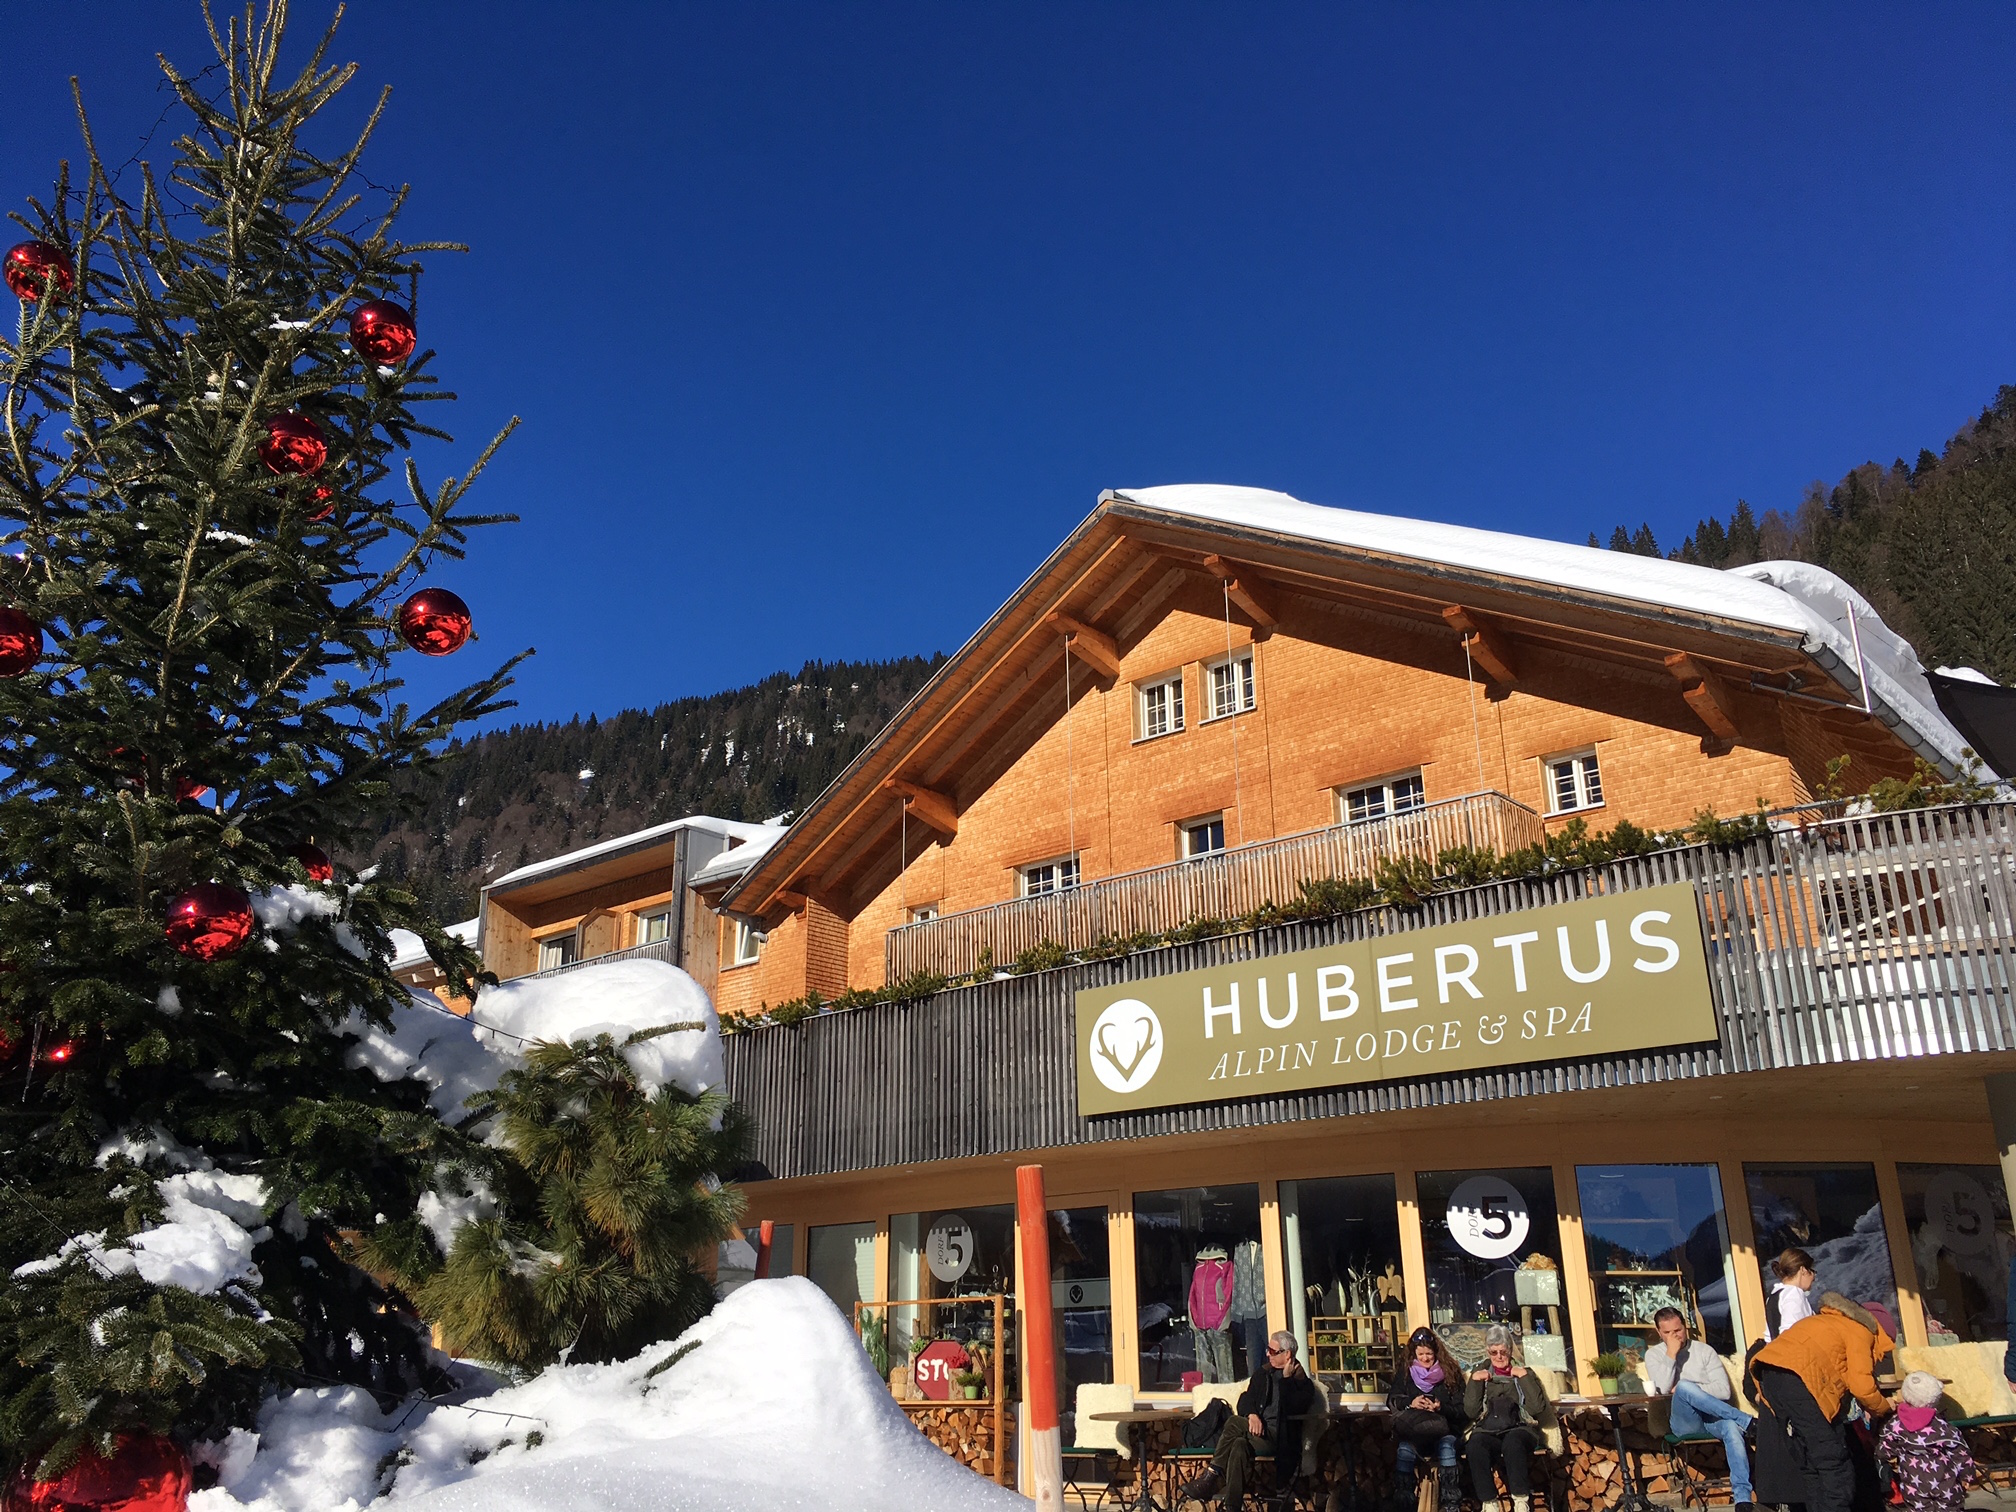 Hotel Hubertus Alpin Lodge und SPA